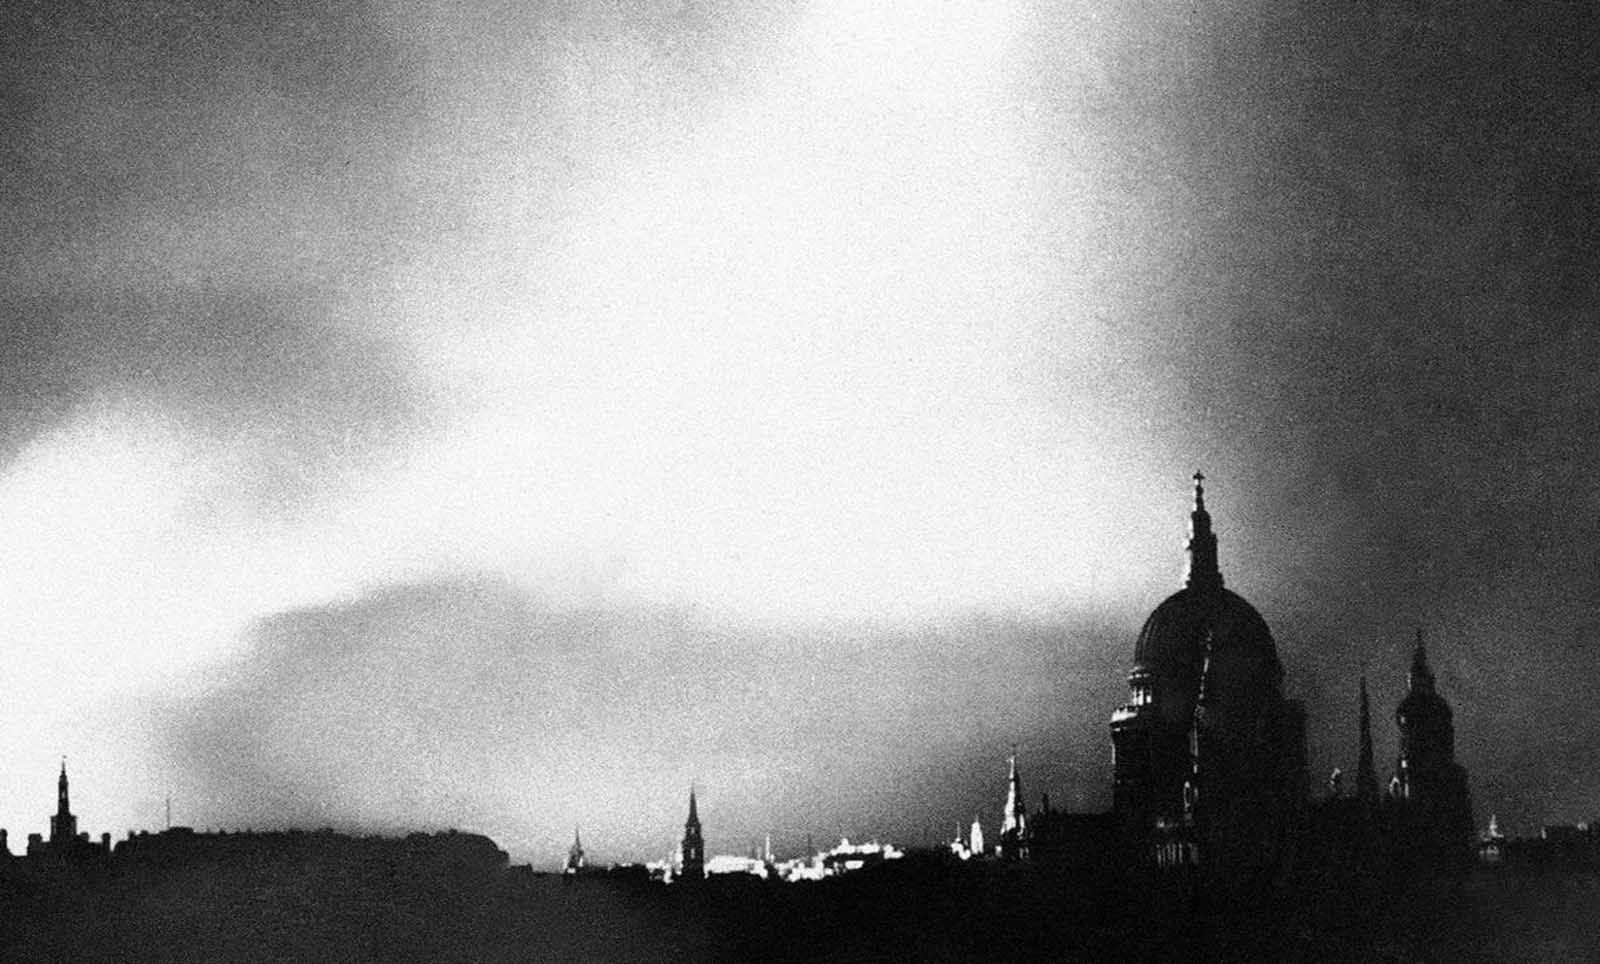 Fires rage in the city of London after a lone German bomber had dropped incendiary bombs close to the heart of the city on September 1, 1940.